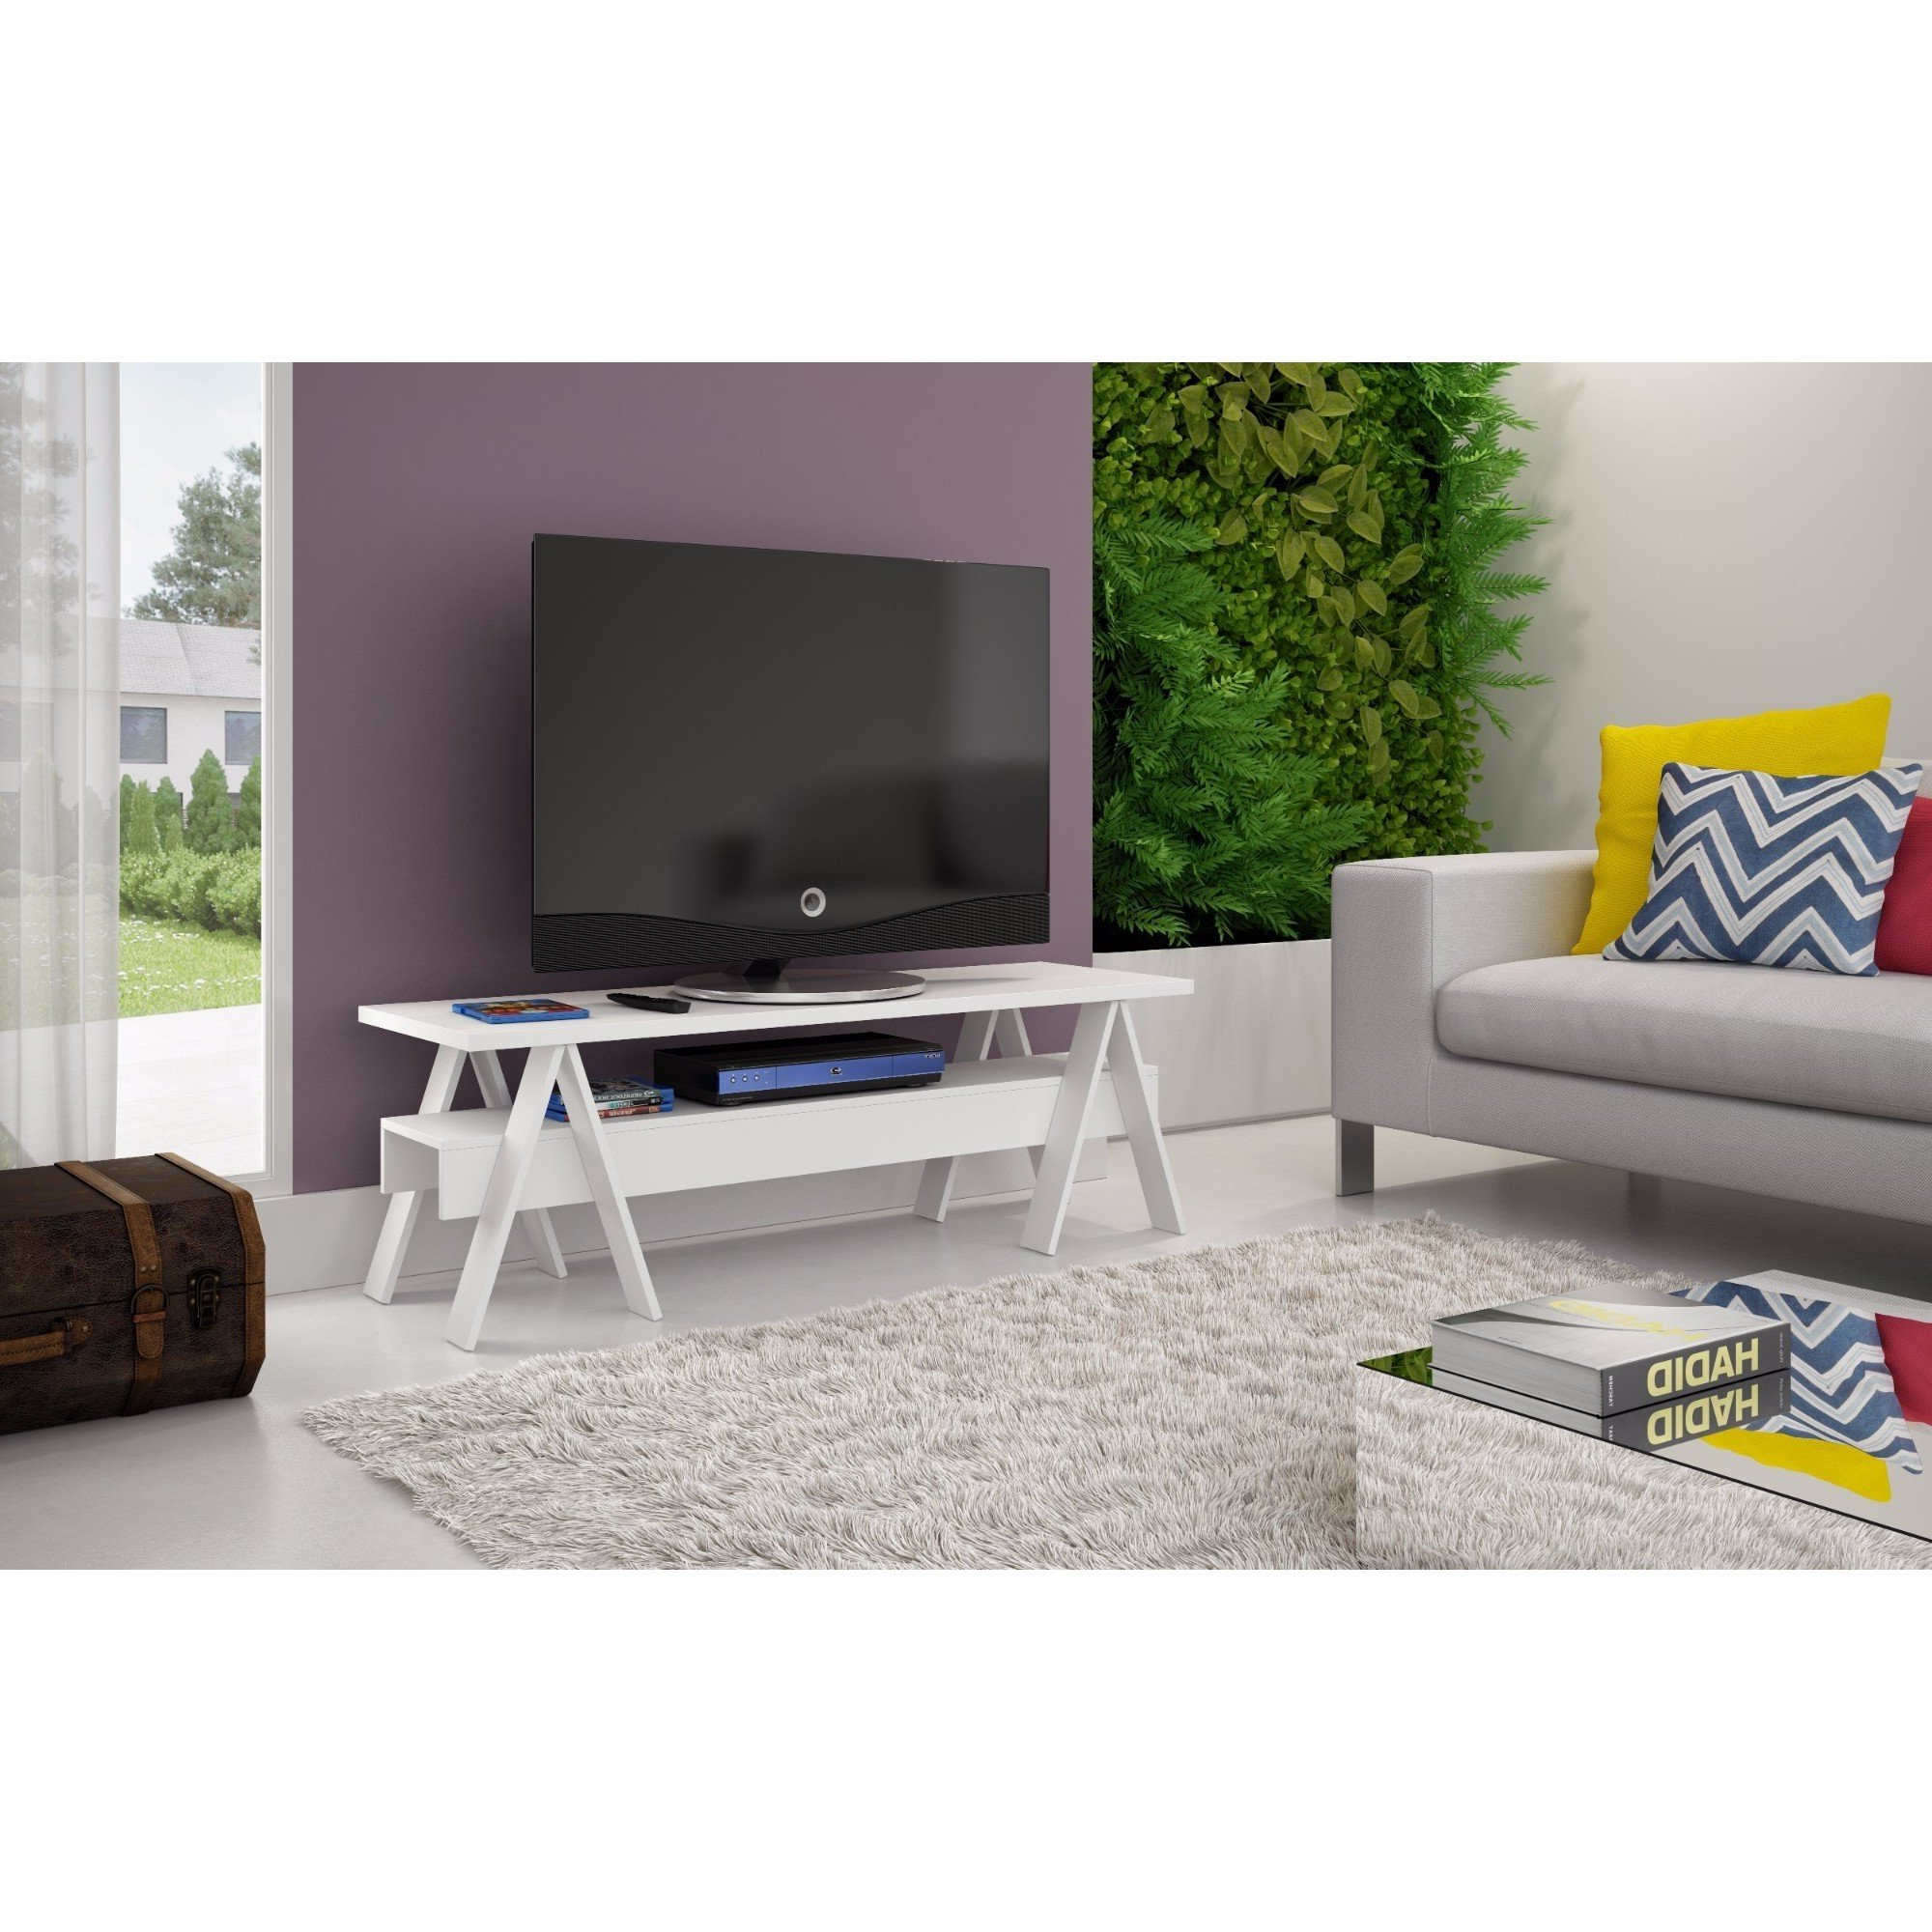 Single Shelf Tv Stands With Regard To Most Recently Released Shop Manhattan Comfort Messina Single Shelf Tv Stand – Free Shipping (View 3 of 20)